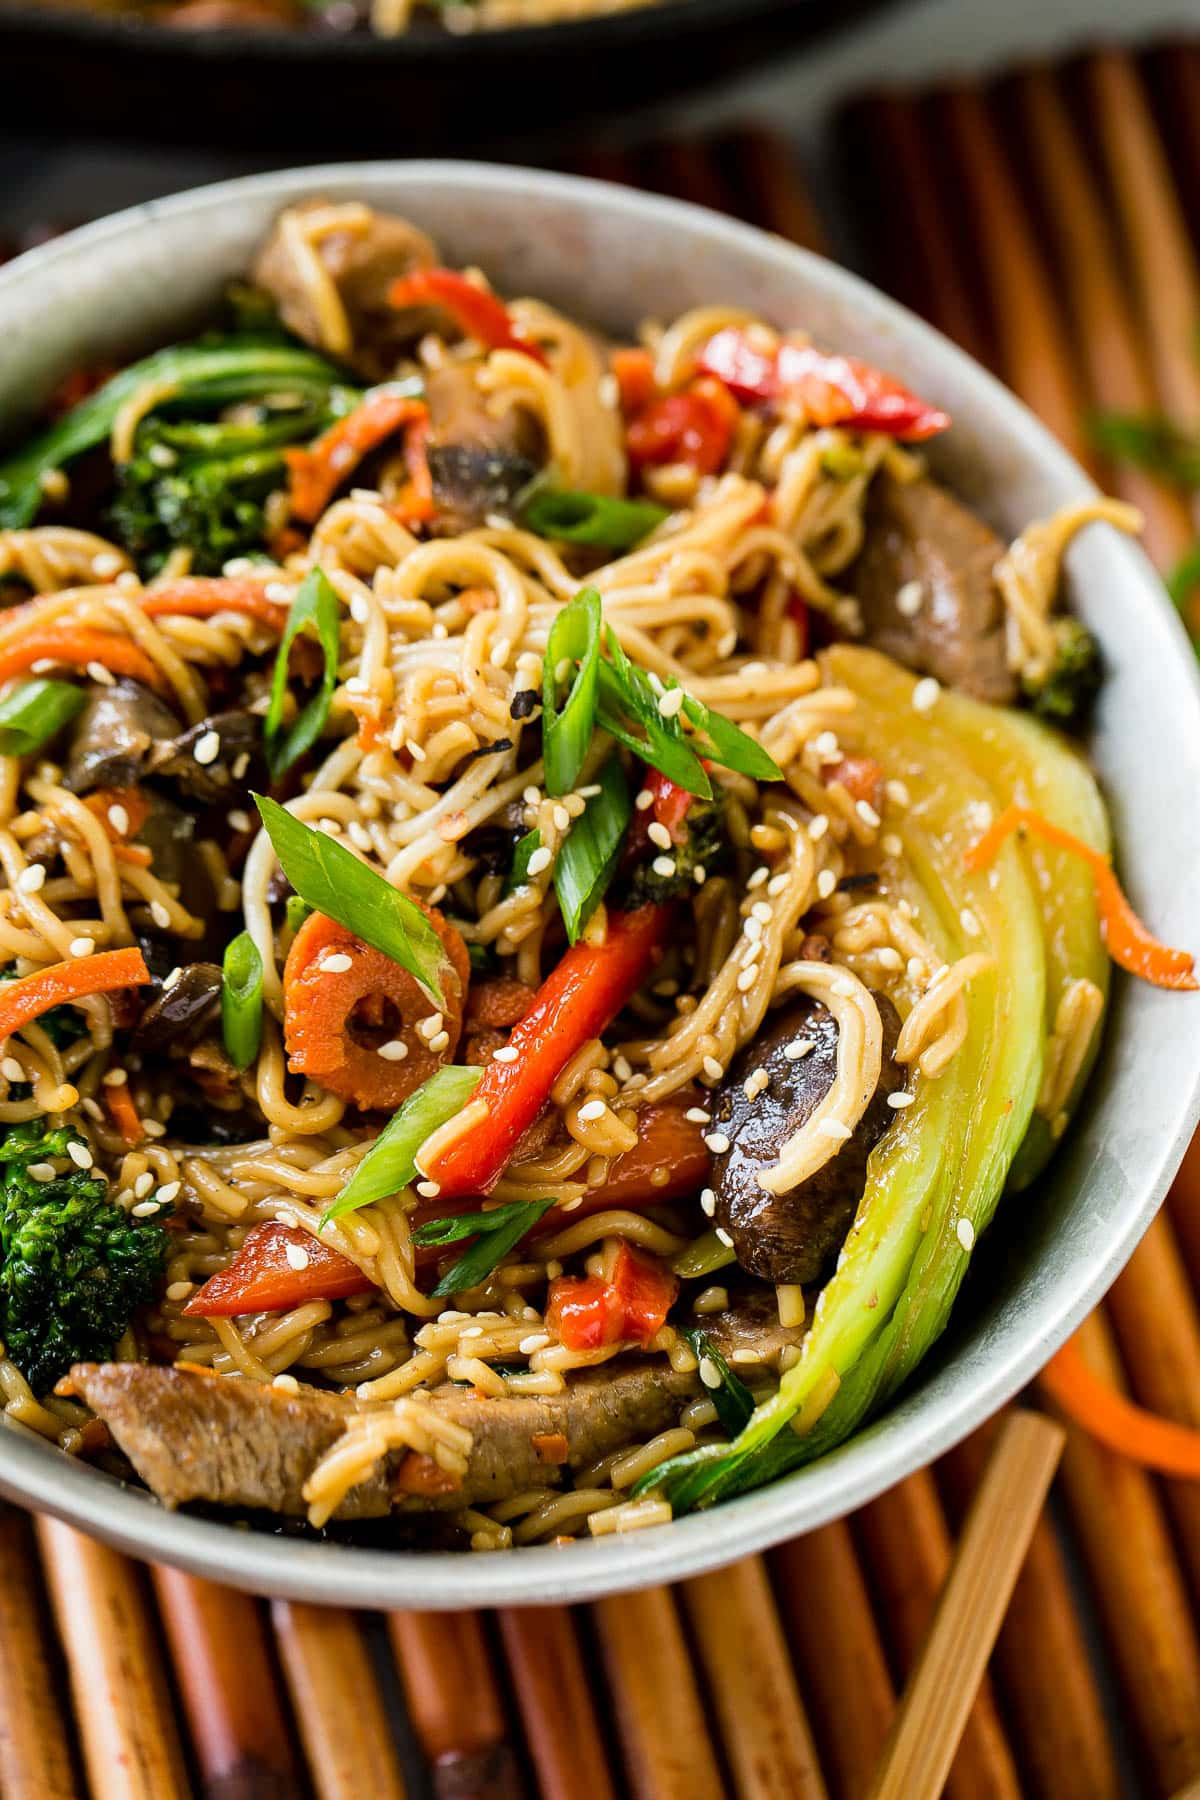 It just takes 15 minutes to make this quick and easy 15 minute beef stir fry with skirt steak, baby bok choy and other veggies ! ohsweetbasil.com